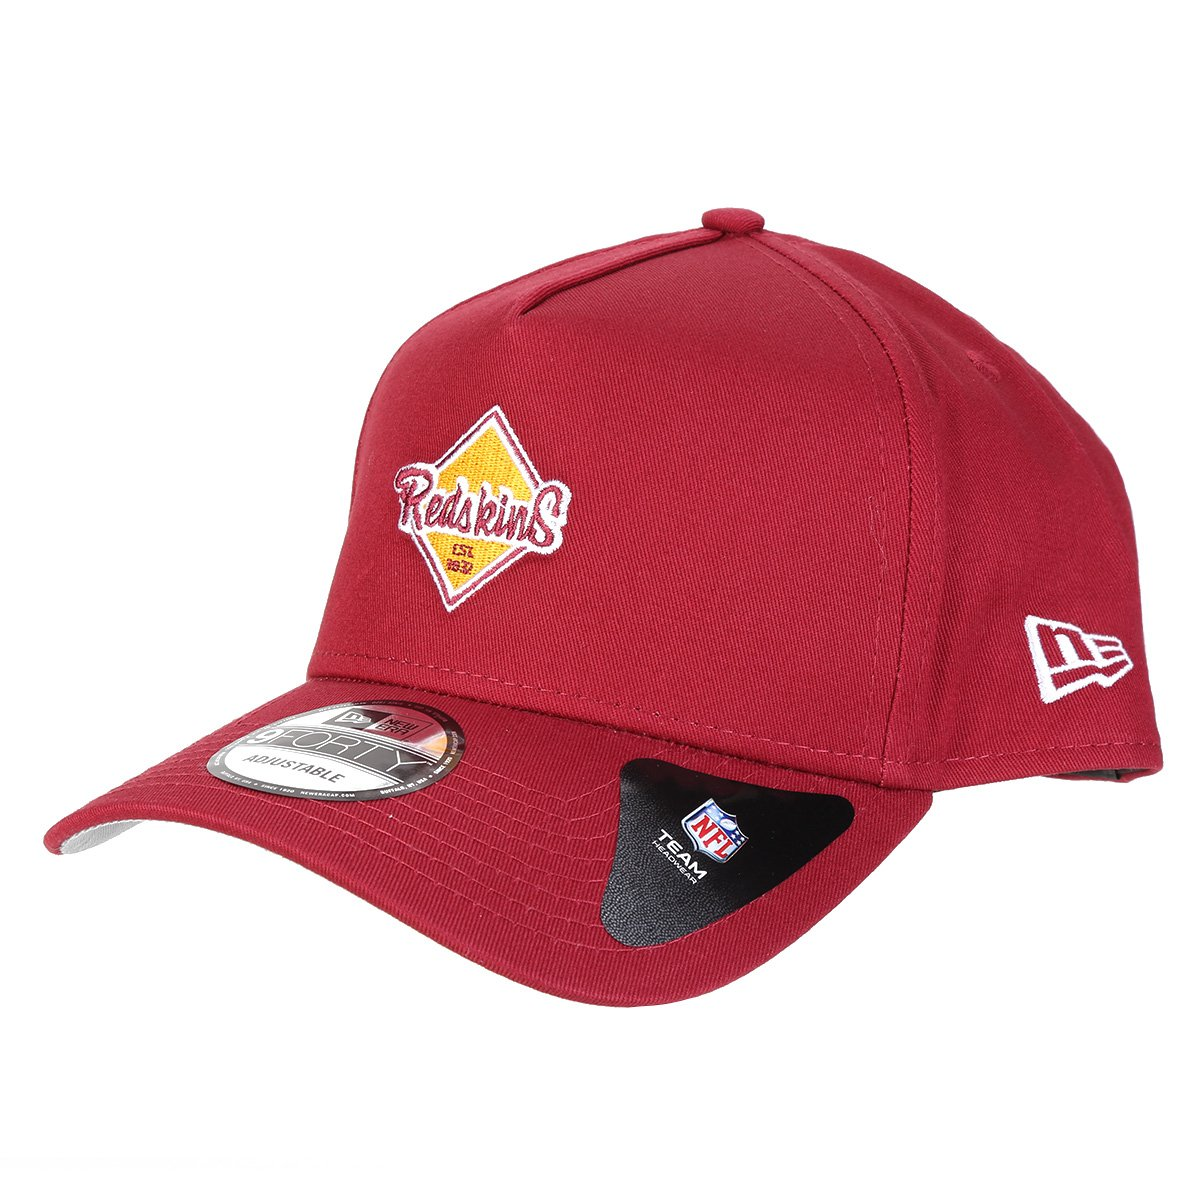 Boné New Era NFL Washington Redskins Retro Aba Curva